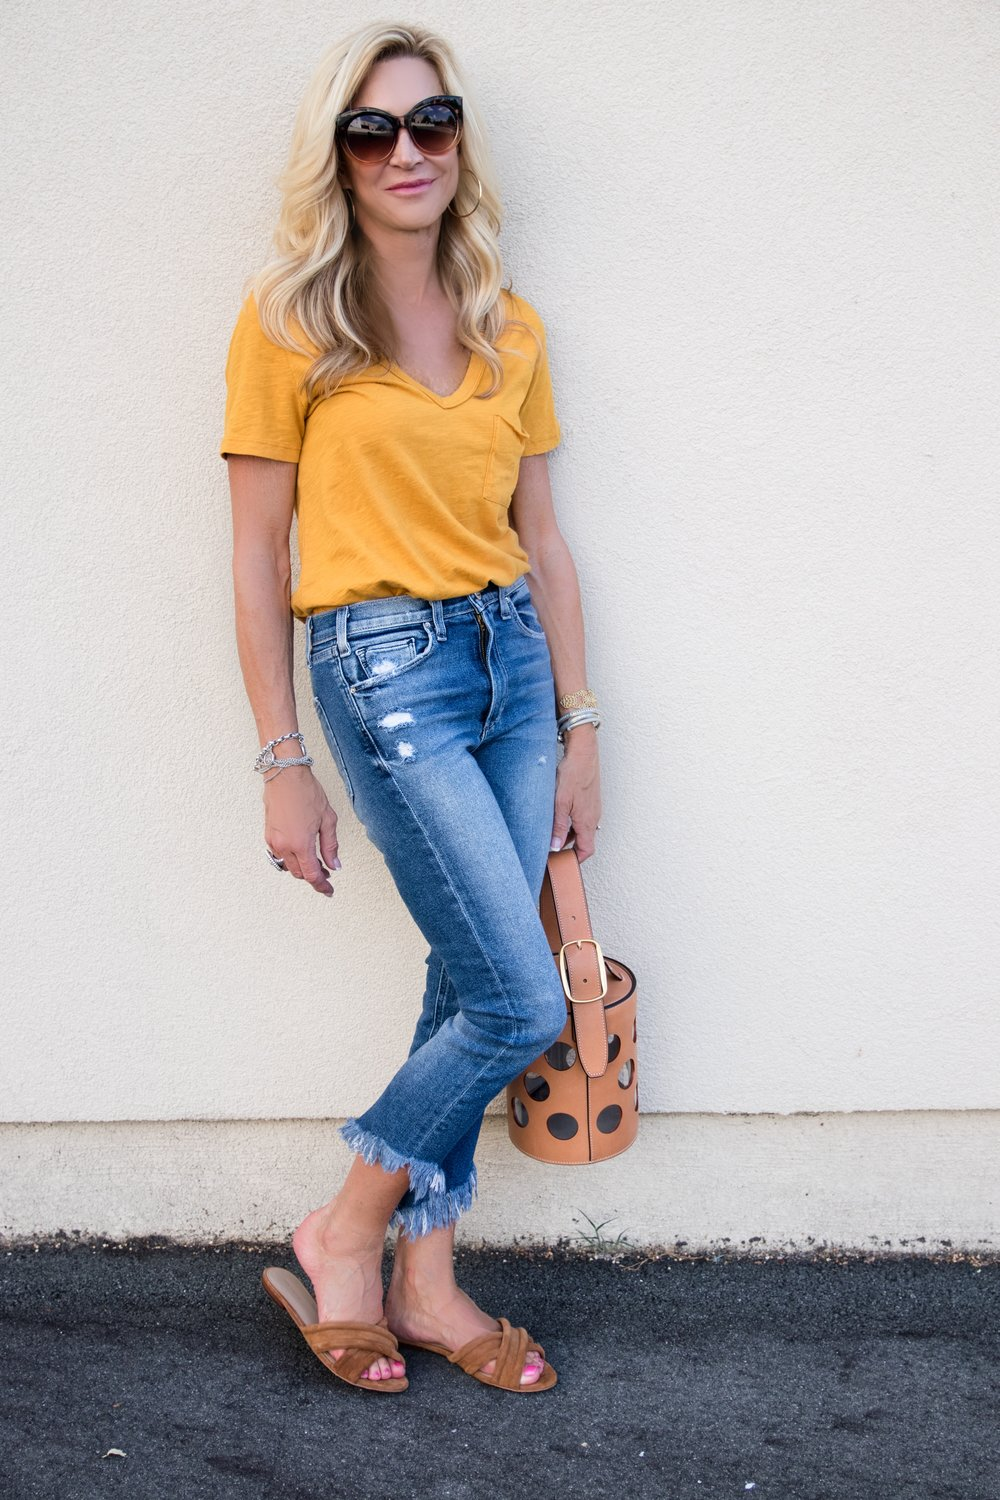 McQuire jeans and Anthropologie tee